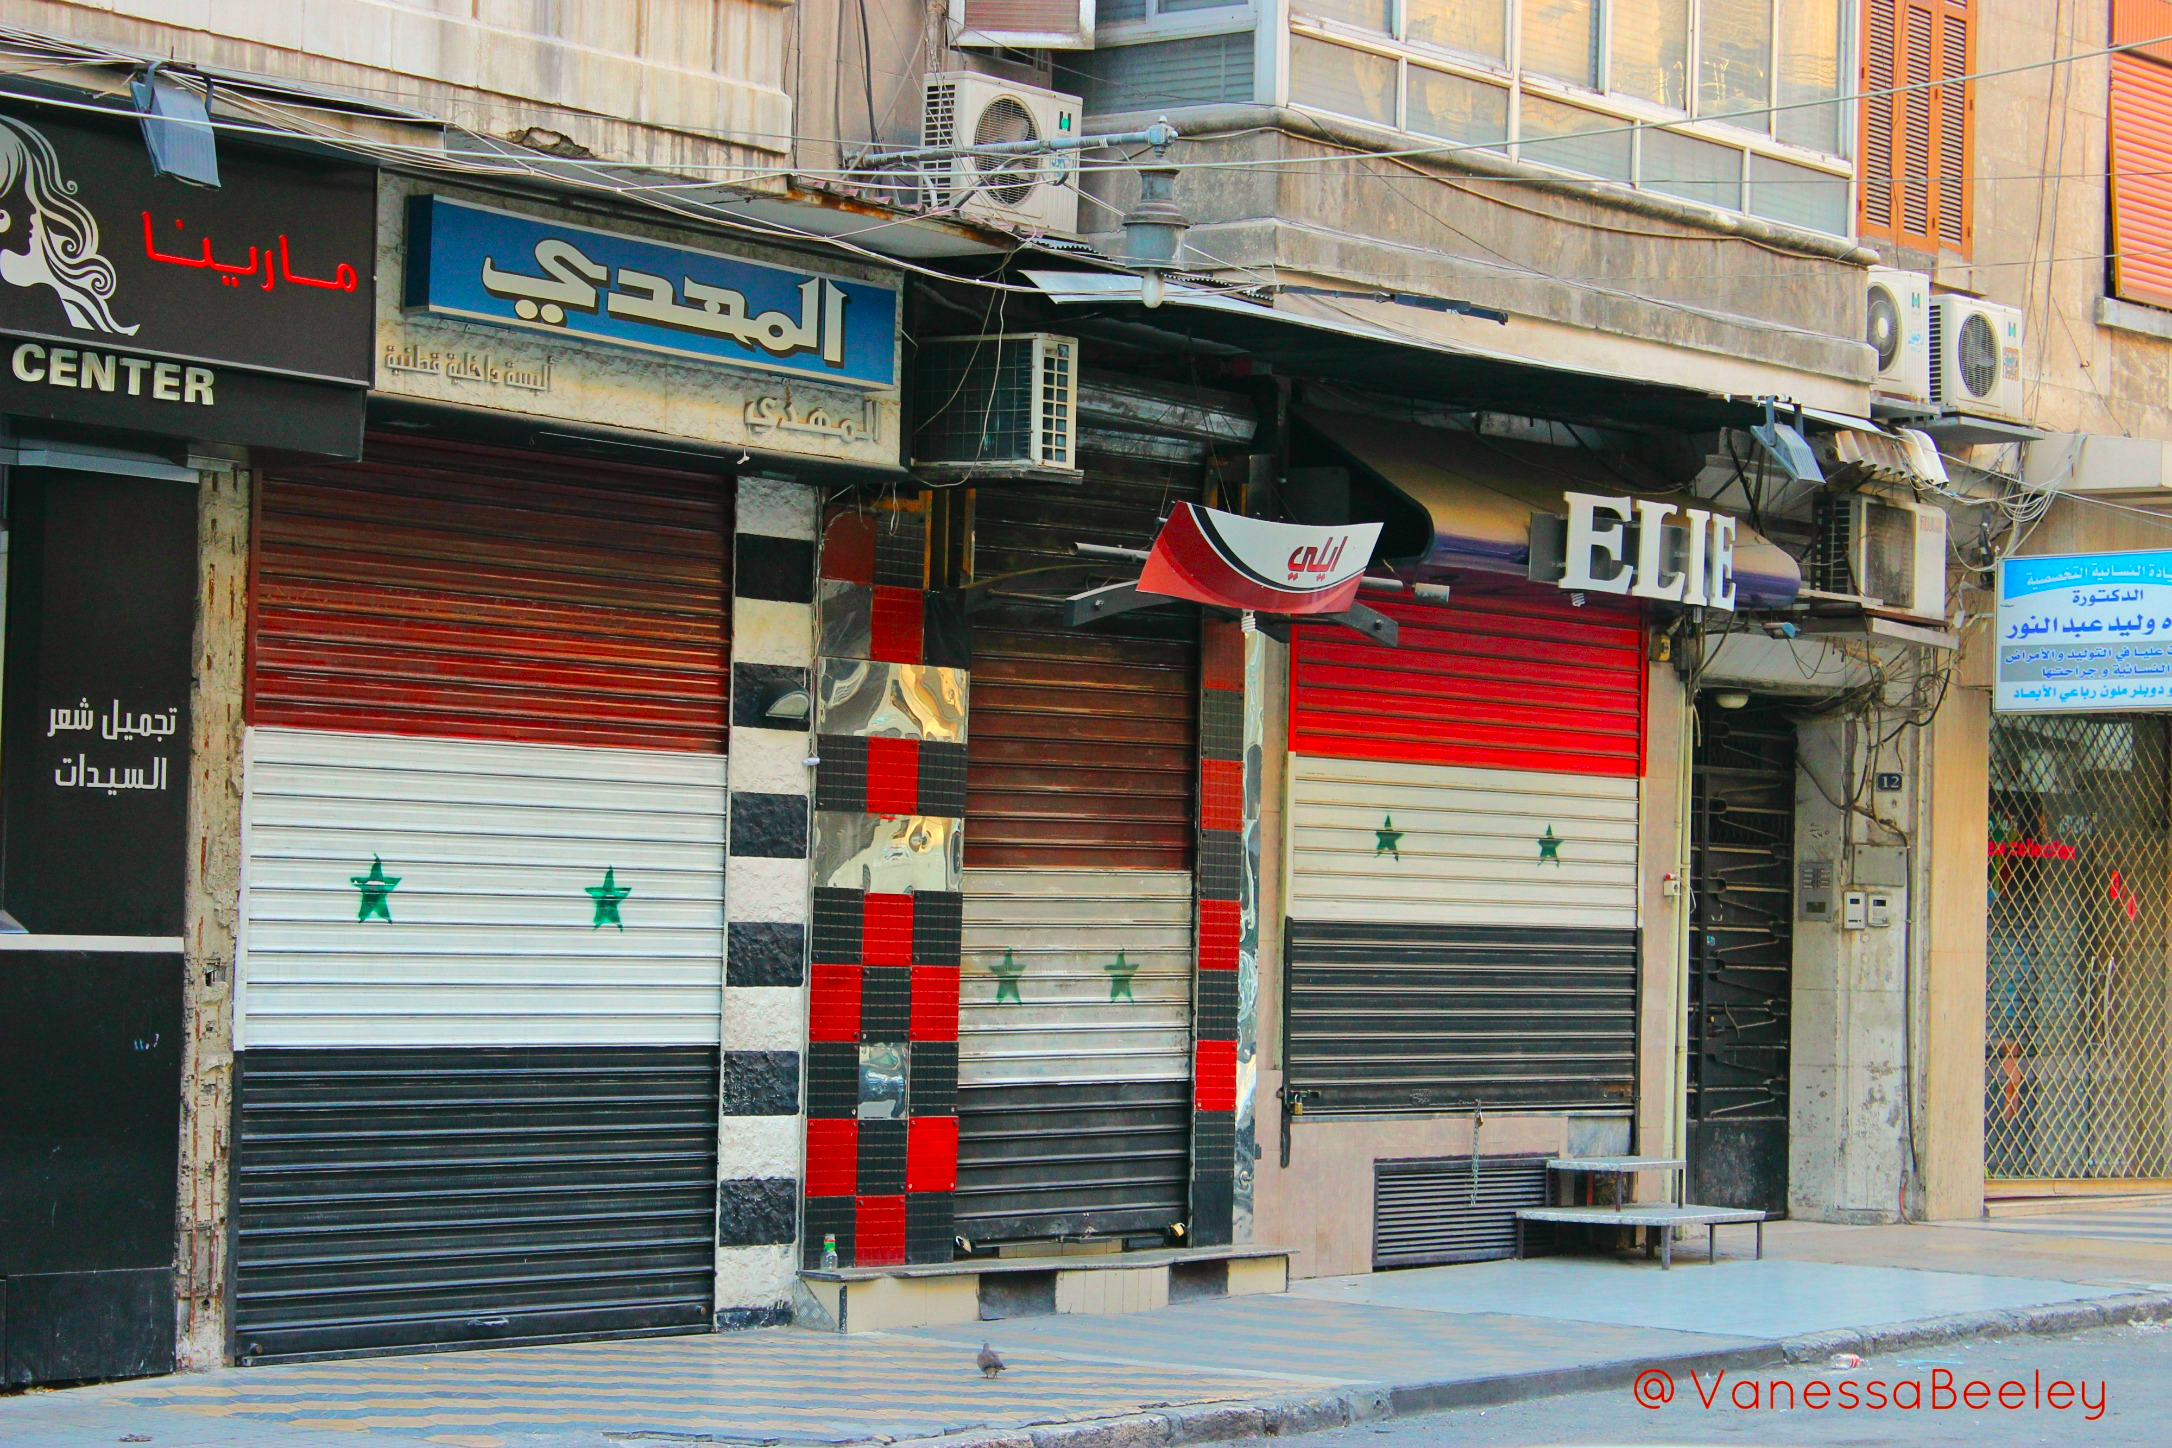 The Syrian flag painted in proud defiance onto storefront shutters in western Aleppo. (Photo: Vanessa Beeley)